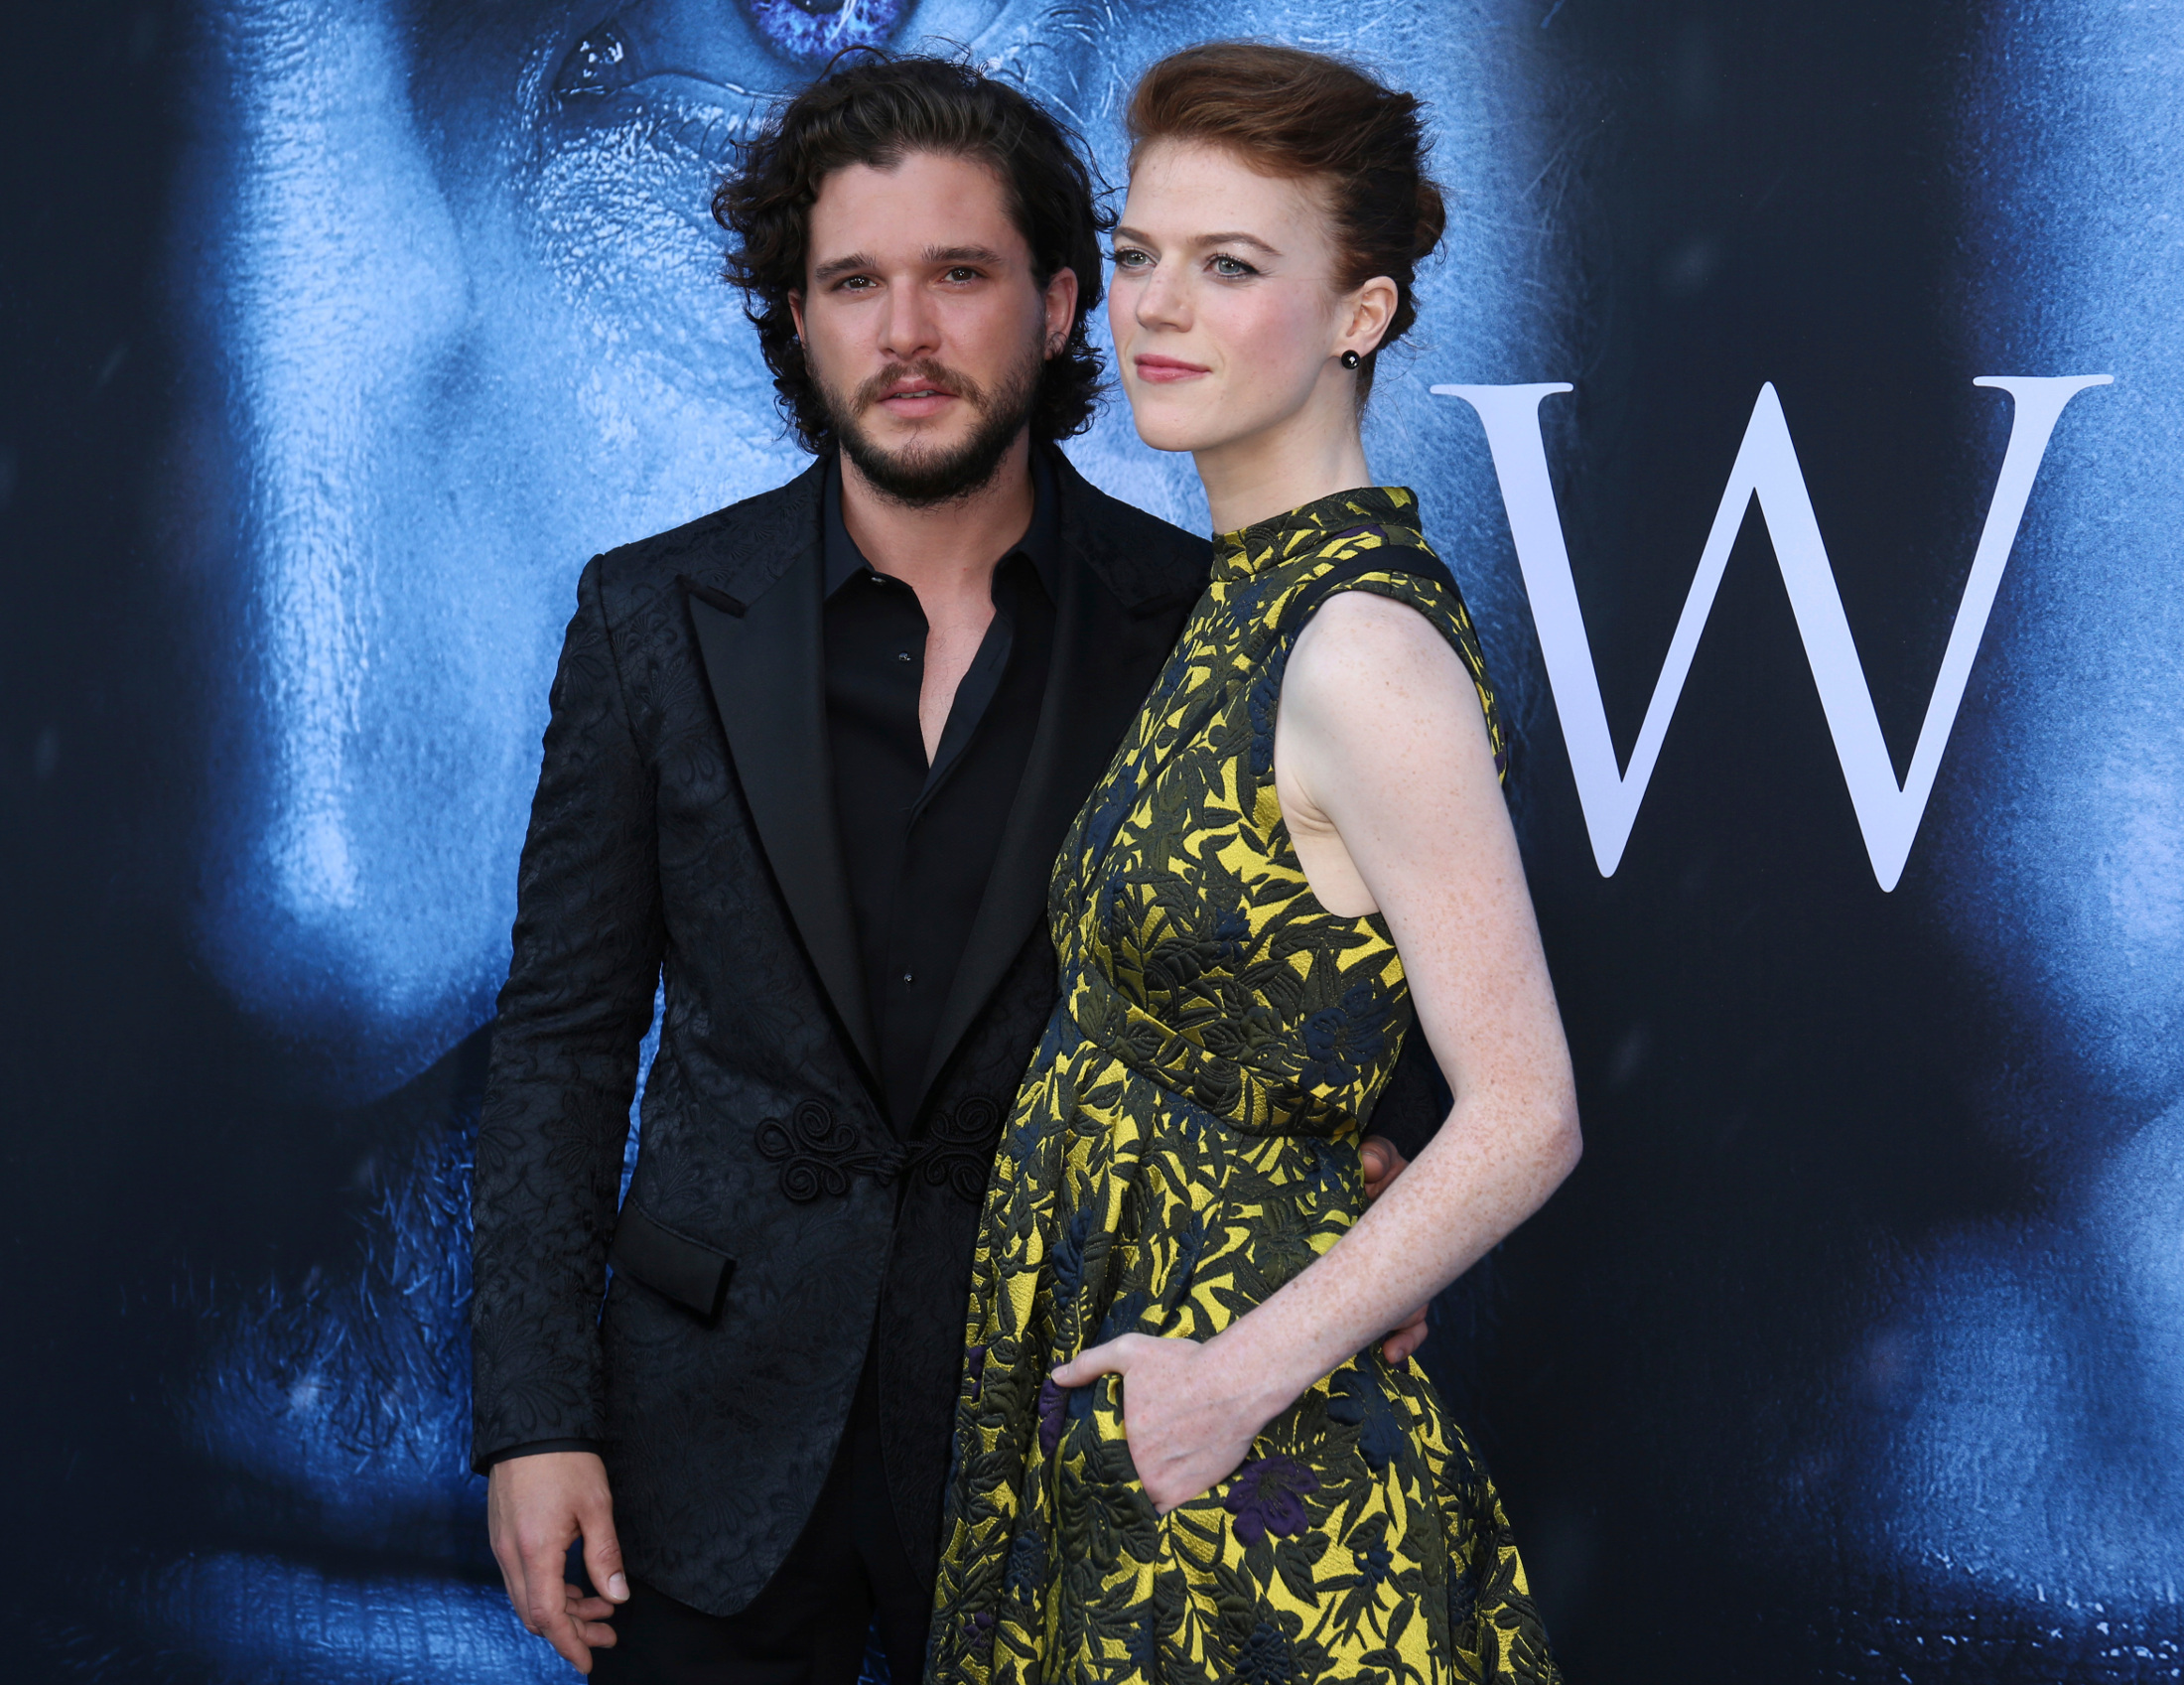 """In this July 12, 2017, file photo, Kit Harington, left, and Rose Leslie arrive at the LA Premiere of """"Game of Thrones"""" at The Walt Disney Concert Hall in Los Angeles. The couple announced their engagement in the Times of London newspaper on Sept. 27, 2017. (Photo by Willy Sanjuan/Invision/AP, File)"""